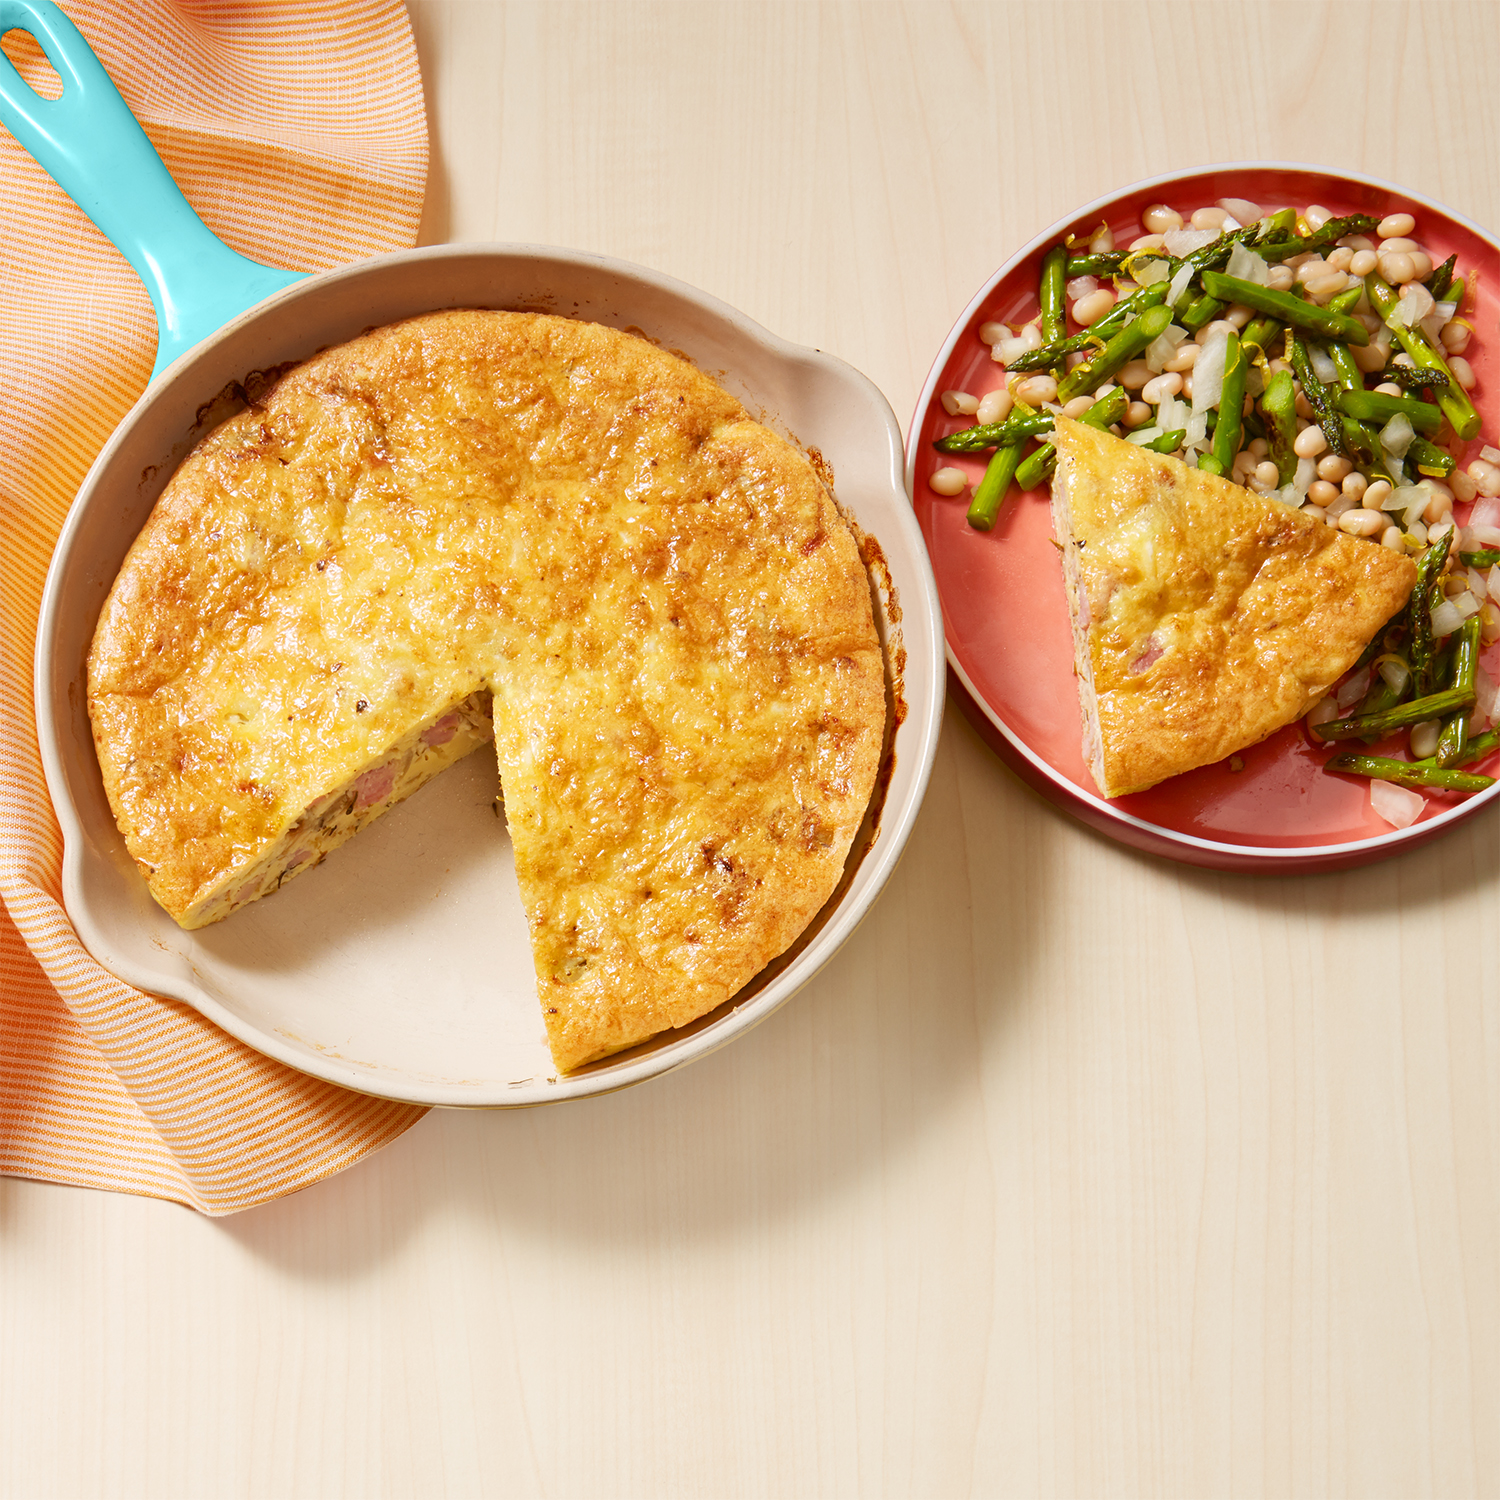 Ham & Cheese Crustless Quiche with Asparagus-Cannellini Salad